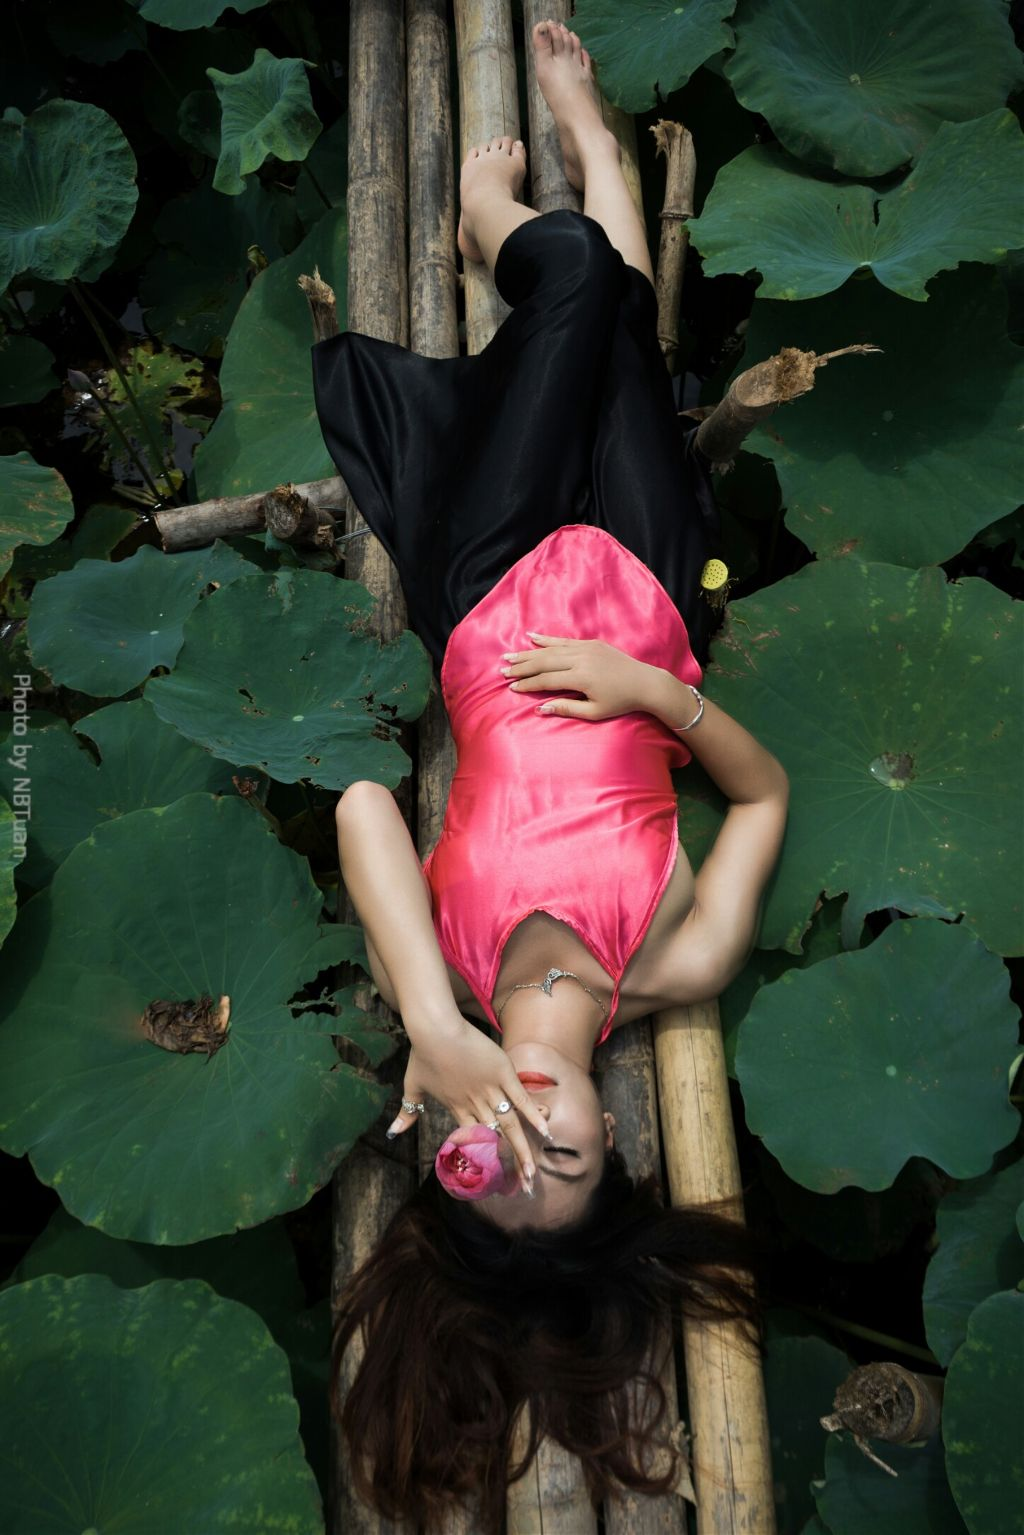 #nature #summer #Lotus #flower #girl #color #canon